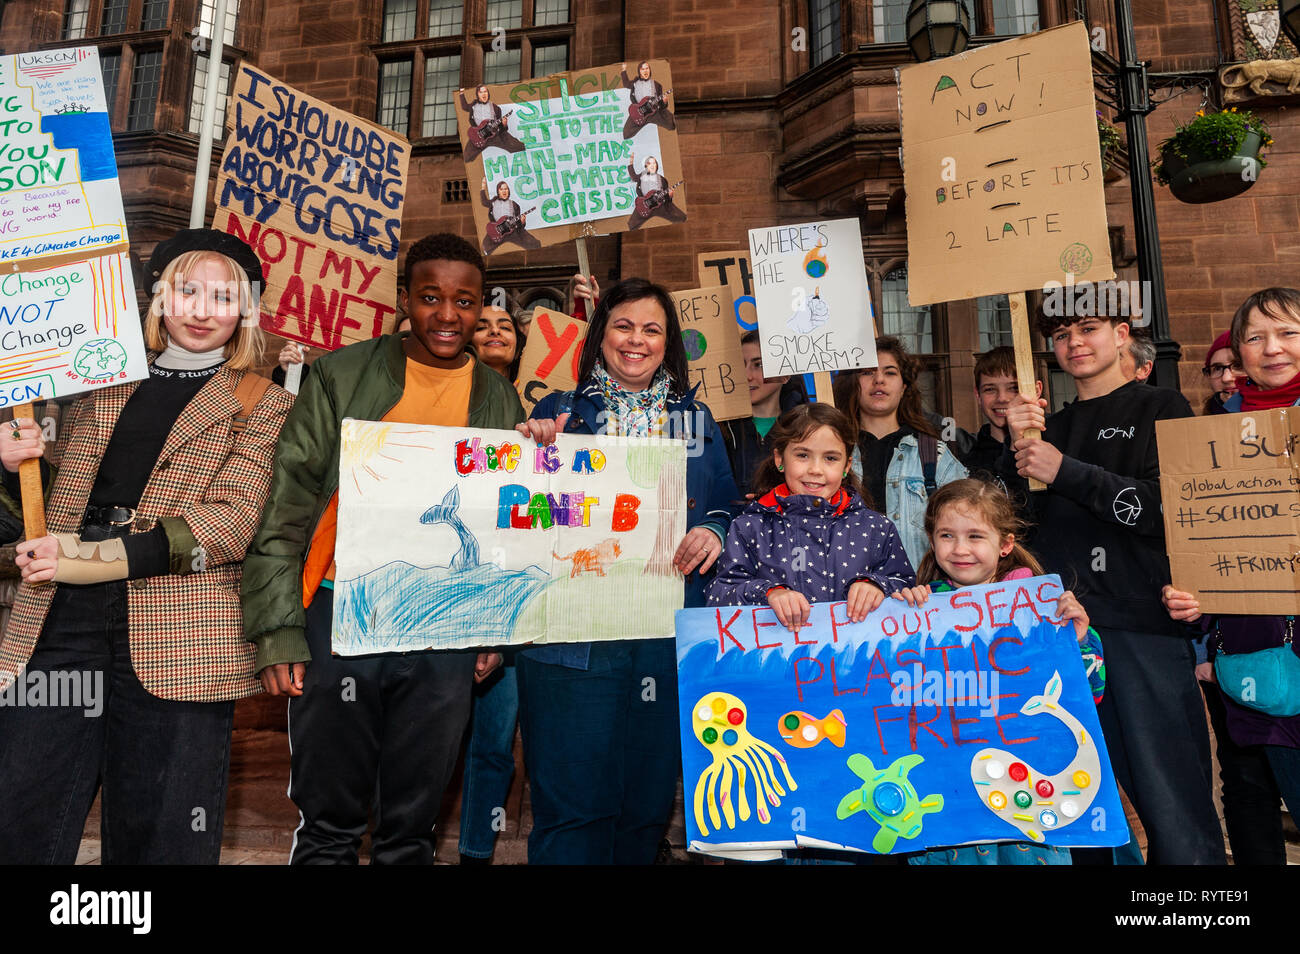 coventry-west-midlands-uk-15th-march-2019-a-large-crowd-of-protesters-gathered-outside-coventry-council-house-this-morning-with-banners-and-placards-in-the-latest-climate-change-protest-young-people-have-taken-to-the-streets-of-the-uk-in-a-global-protest-to-try-and-bring-about-climate-change-credit-andy-gibsonalamy-live-news-RYTE91.jpg